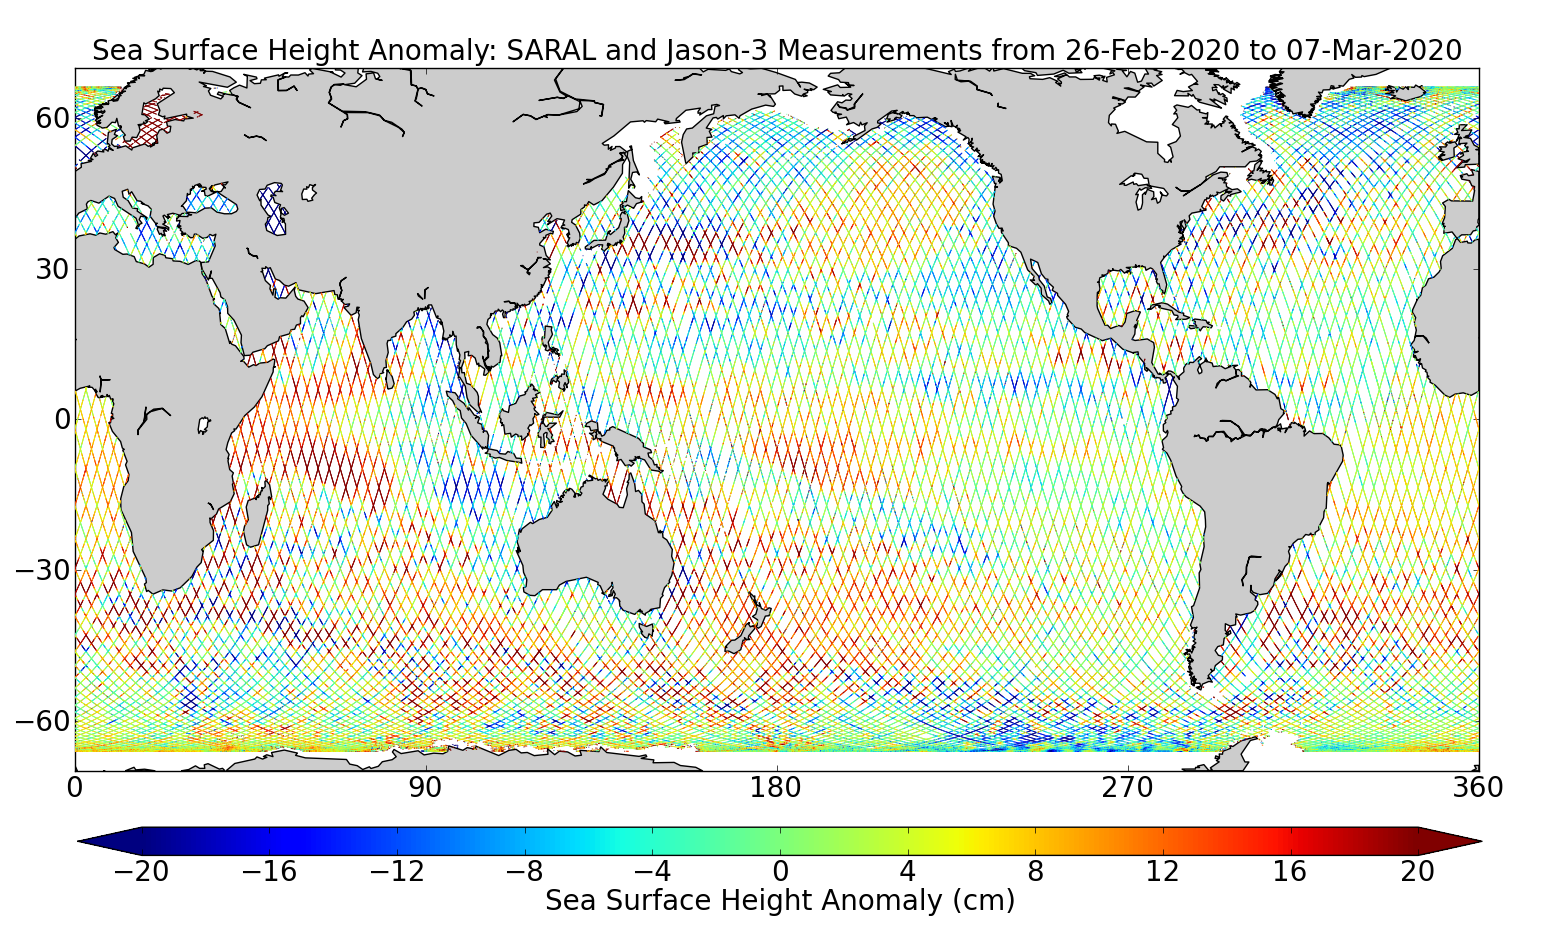 Sea Surface Height Anomaly: SARAL and Jason-3 Measurements from 26-Feb-2020 to 07-Mar-2020